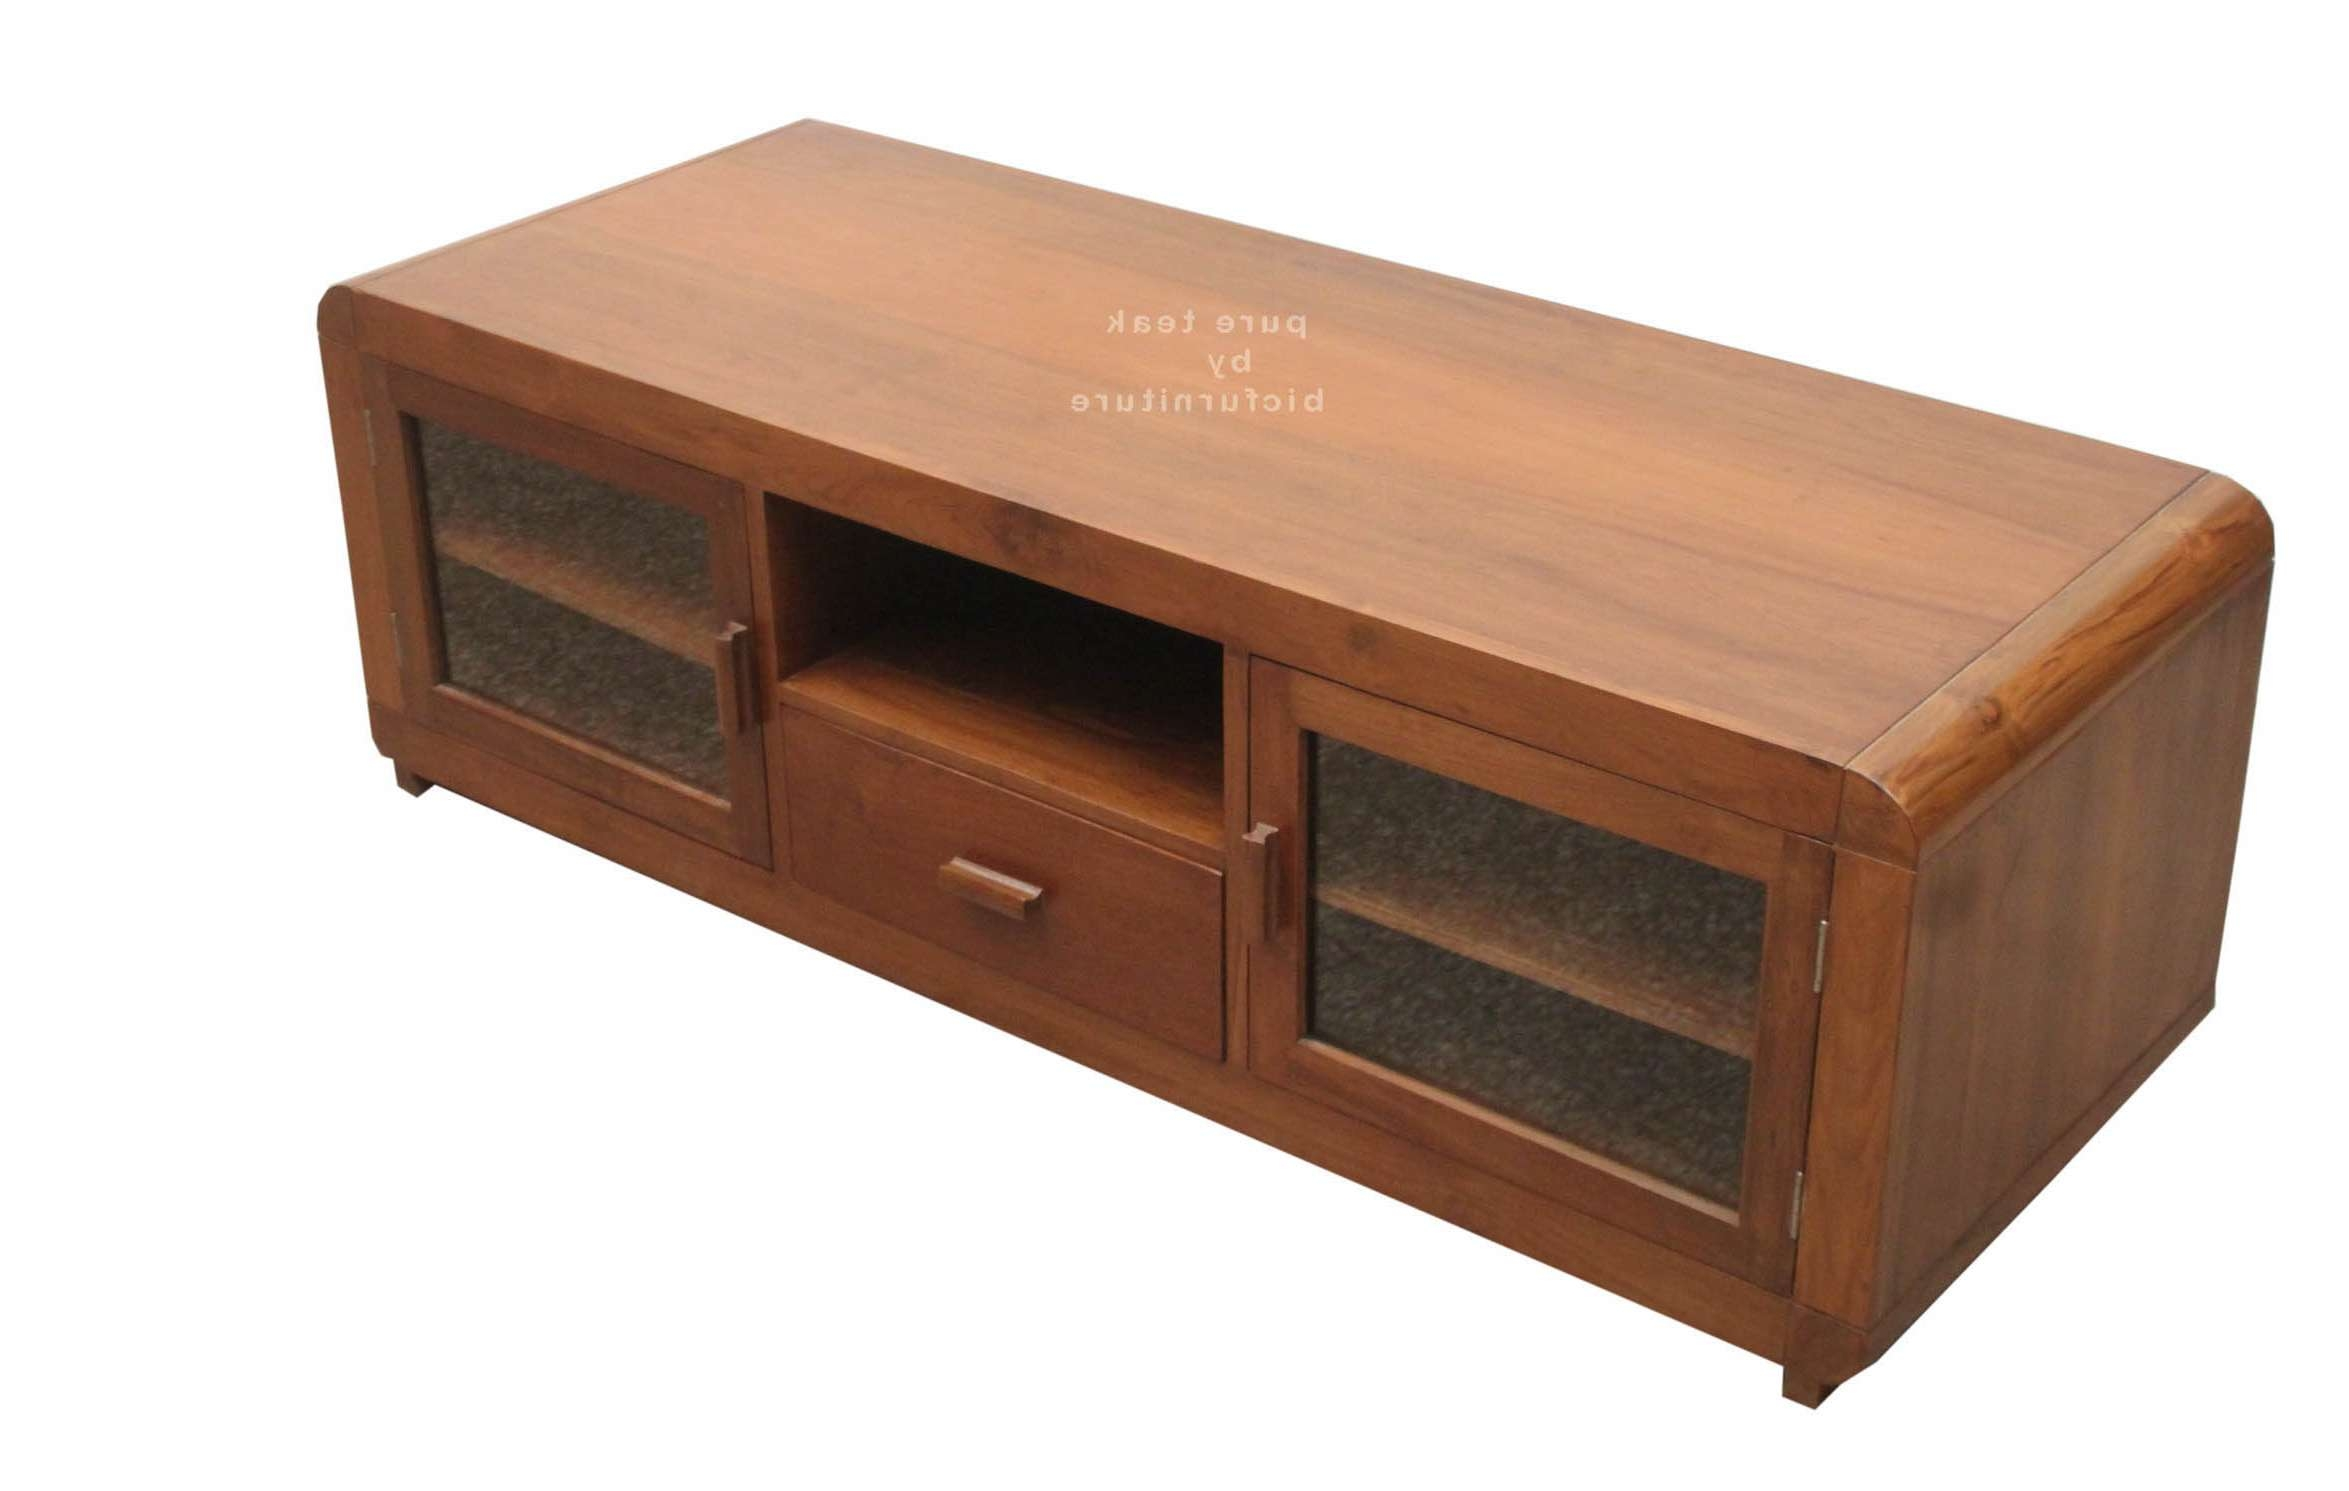 Tv Stand With Rounded Edges – Round Designs Regarding Tv Stands With Rounded Corners (View 14 of 15)